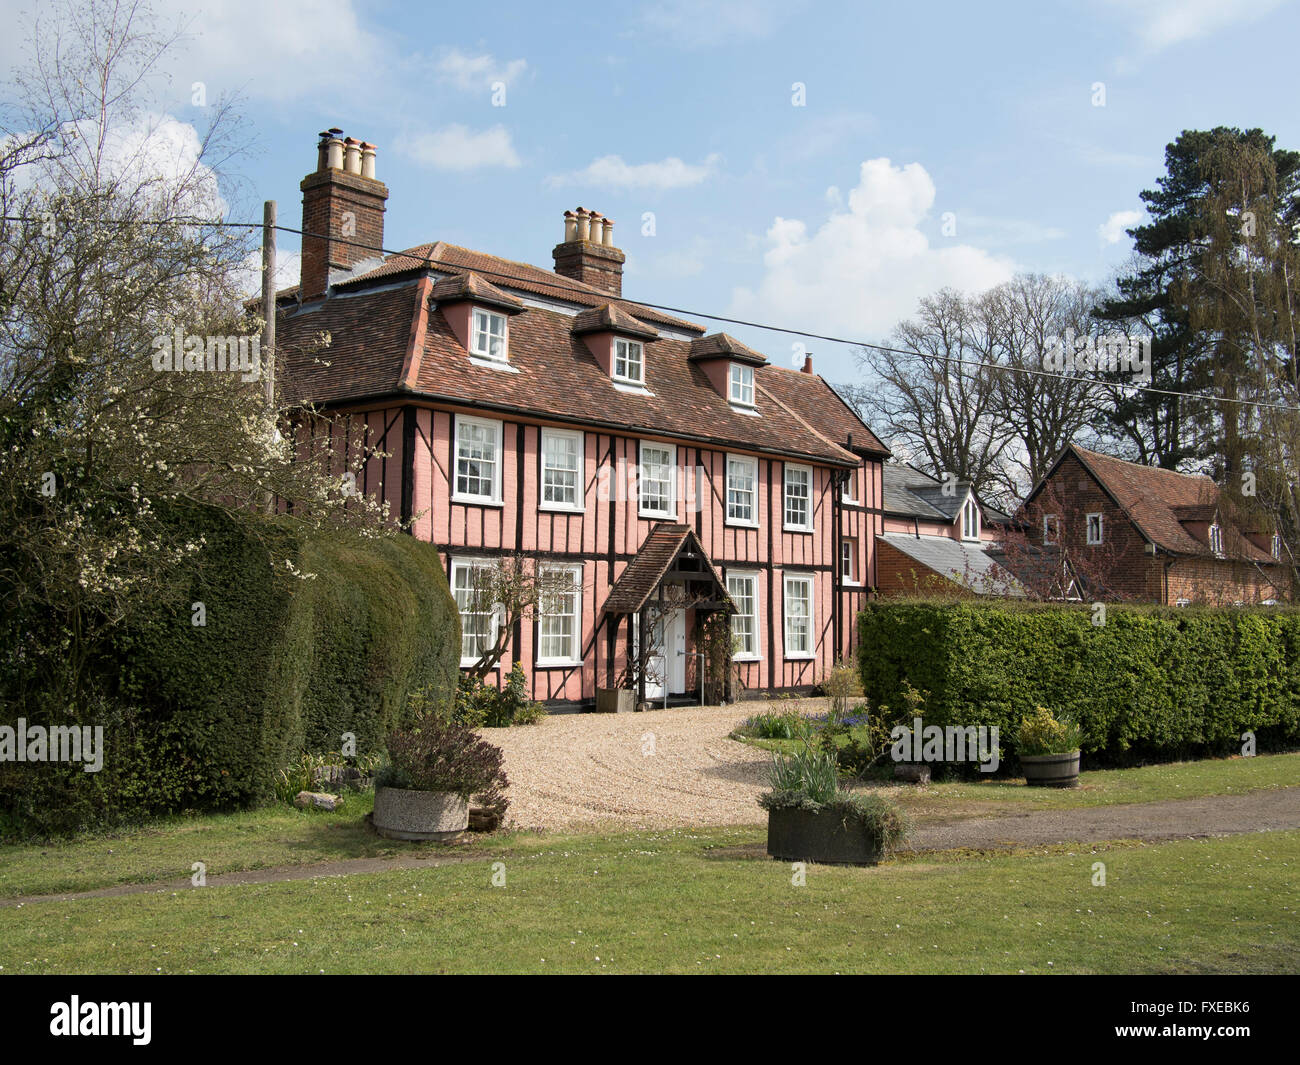 Bradfield Hall, a 17thC grade-II listed timber-framed building in Bradfield Combust, Suffolk, England. - Stock Image